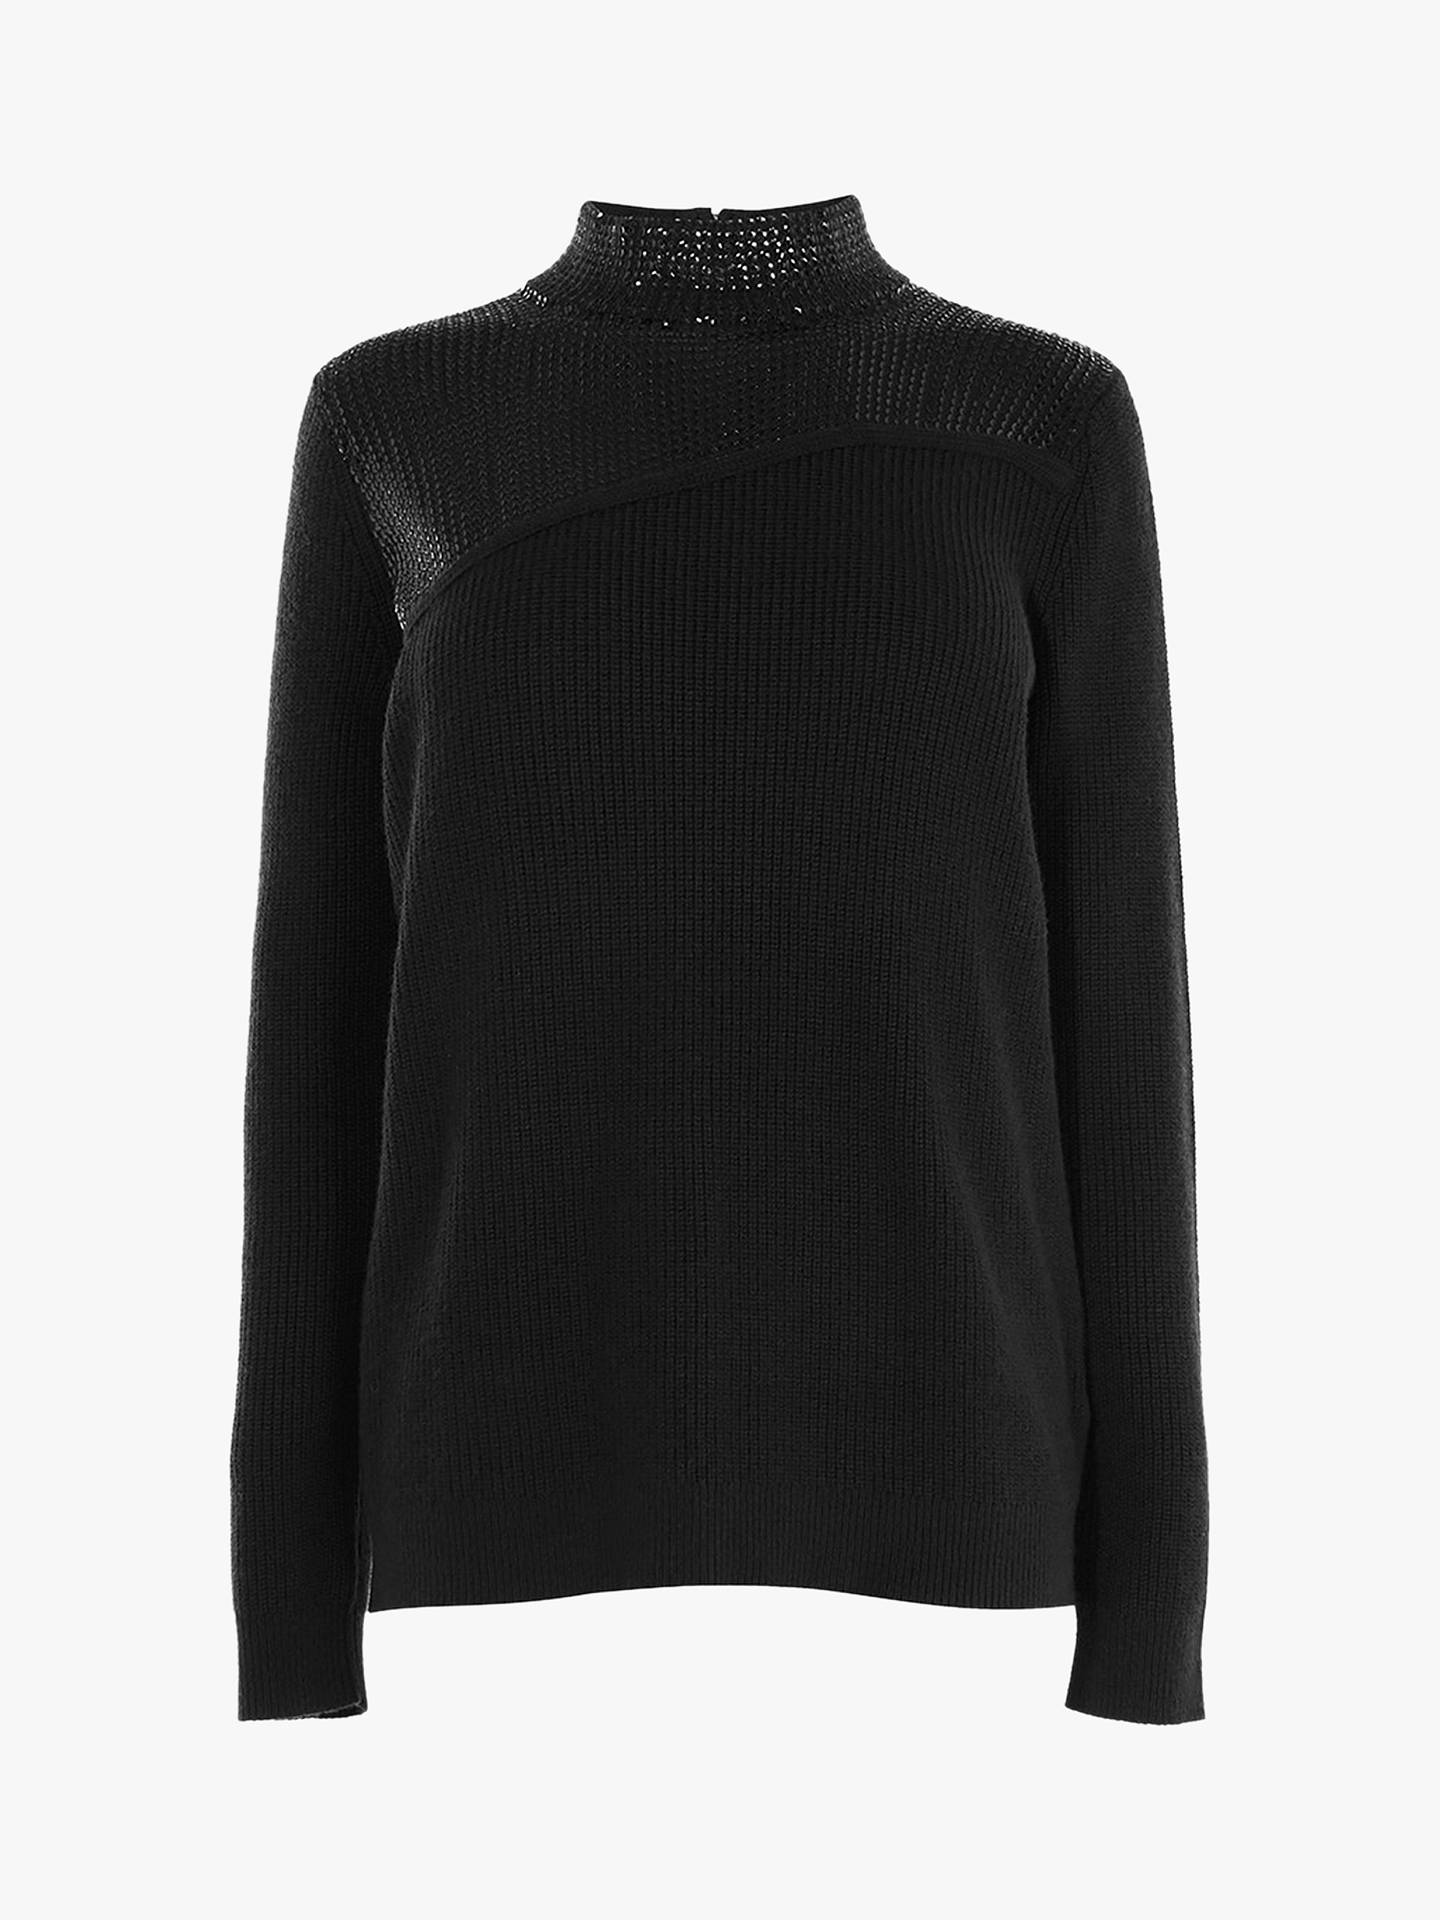 BuyKaren Millen Sequin Roll Neck Jumper, Black, XS Online at johnlewis.com